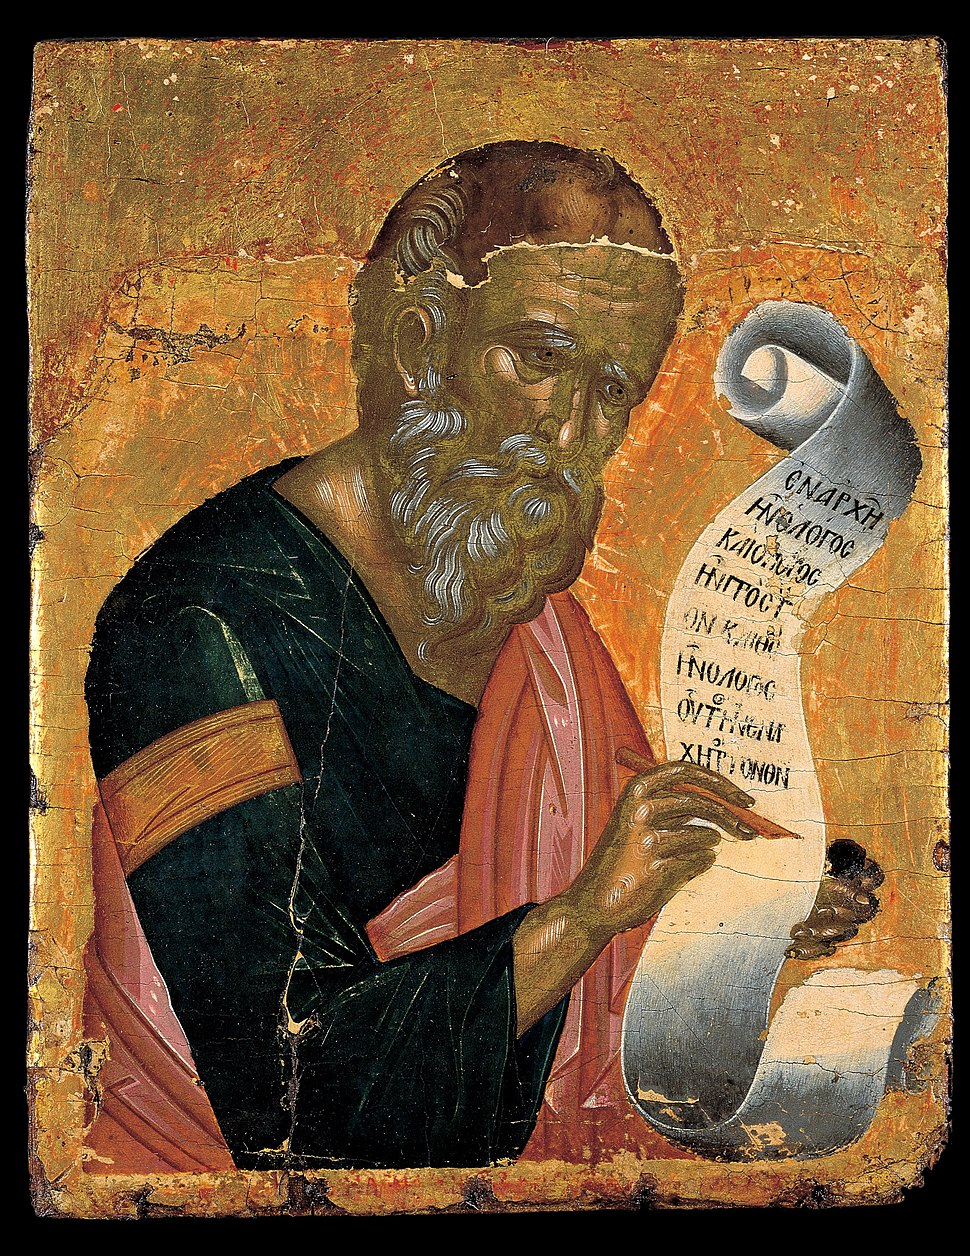 Ritzos Andreas - St John the Theologian writing his Revelations on an open scroll - Google Art Project